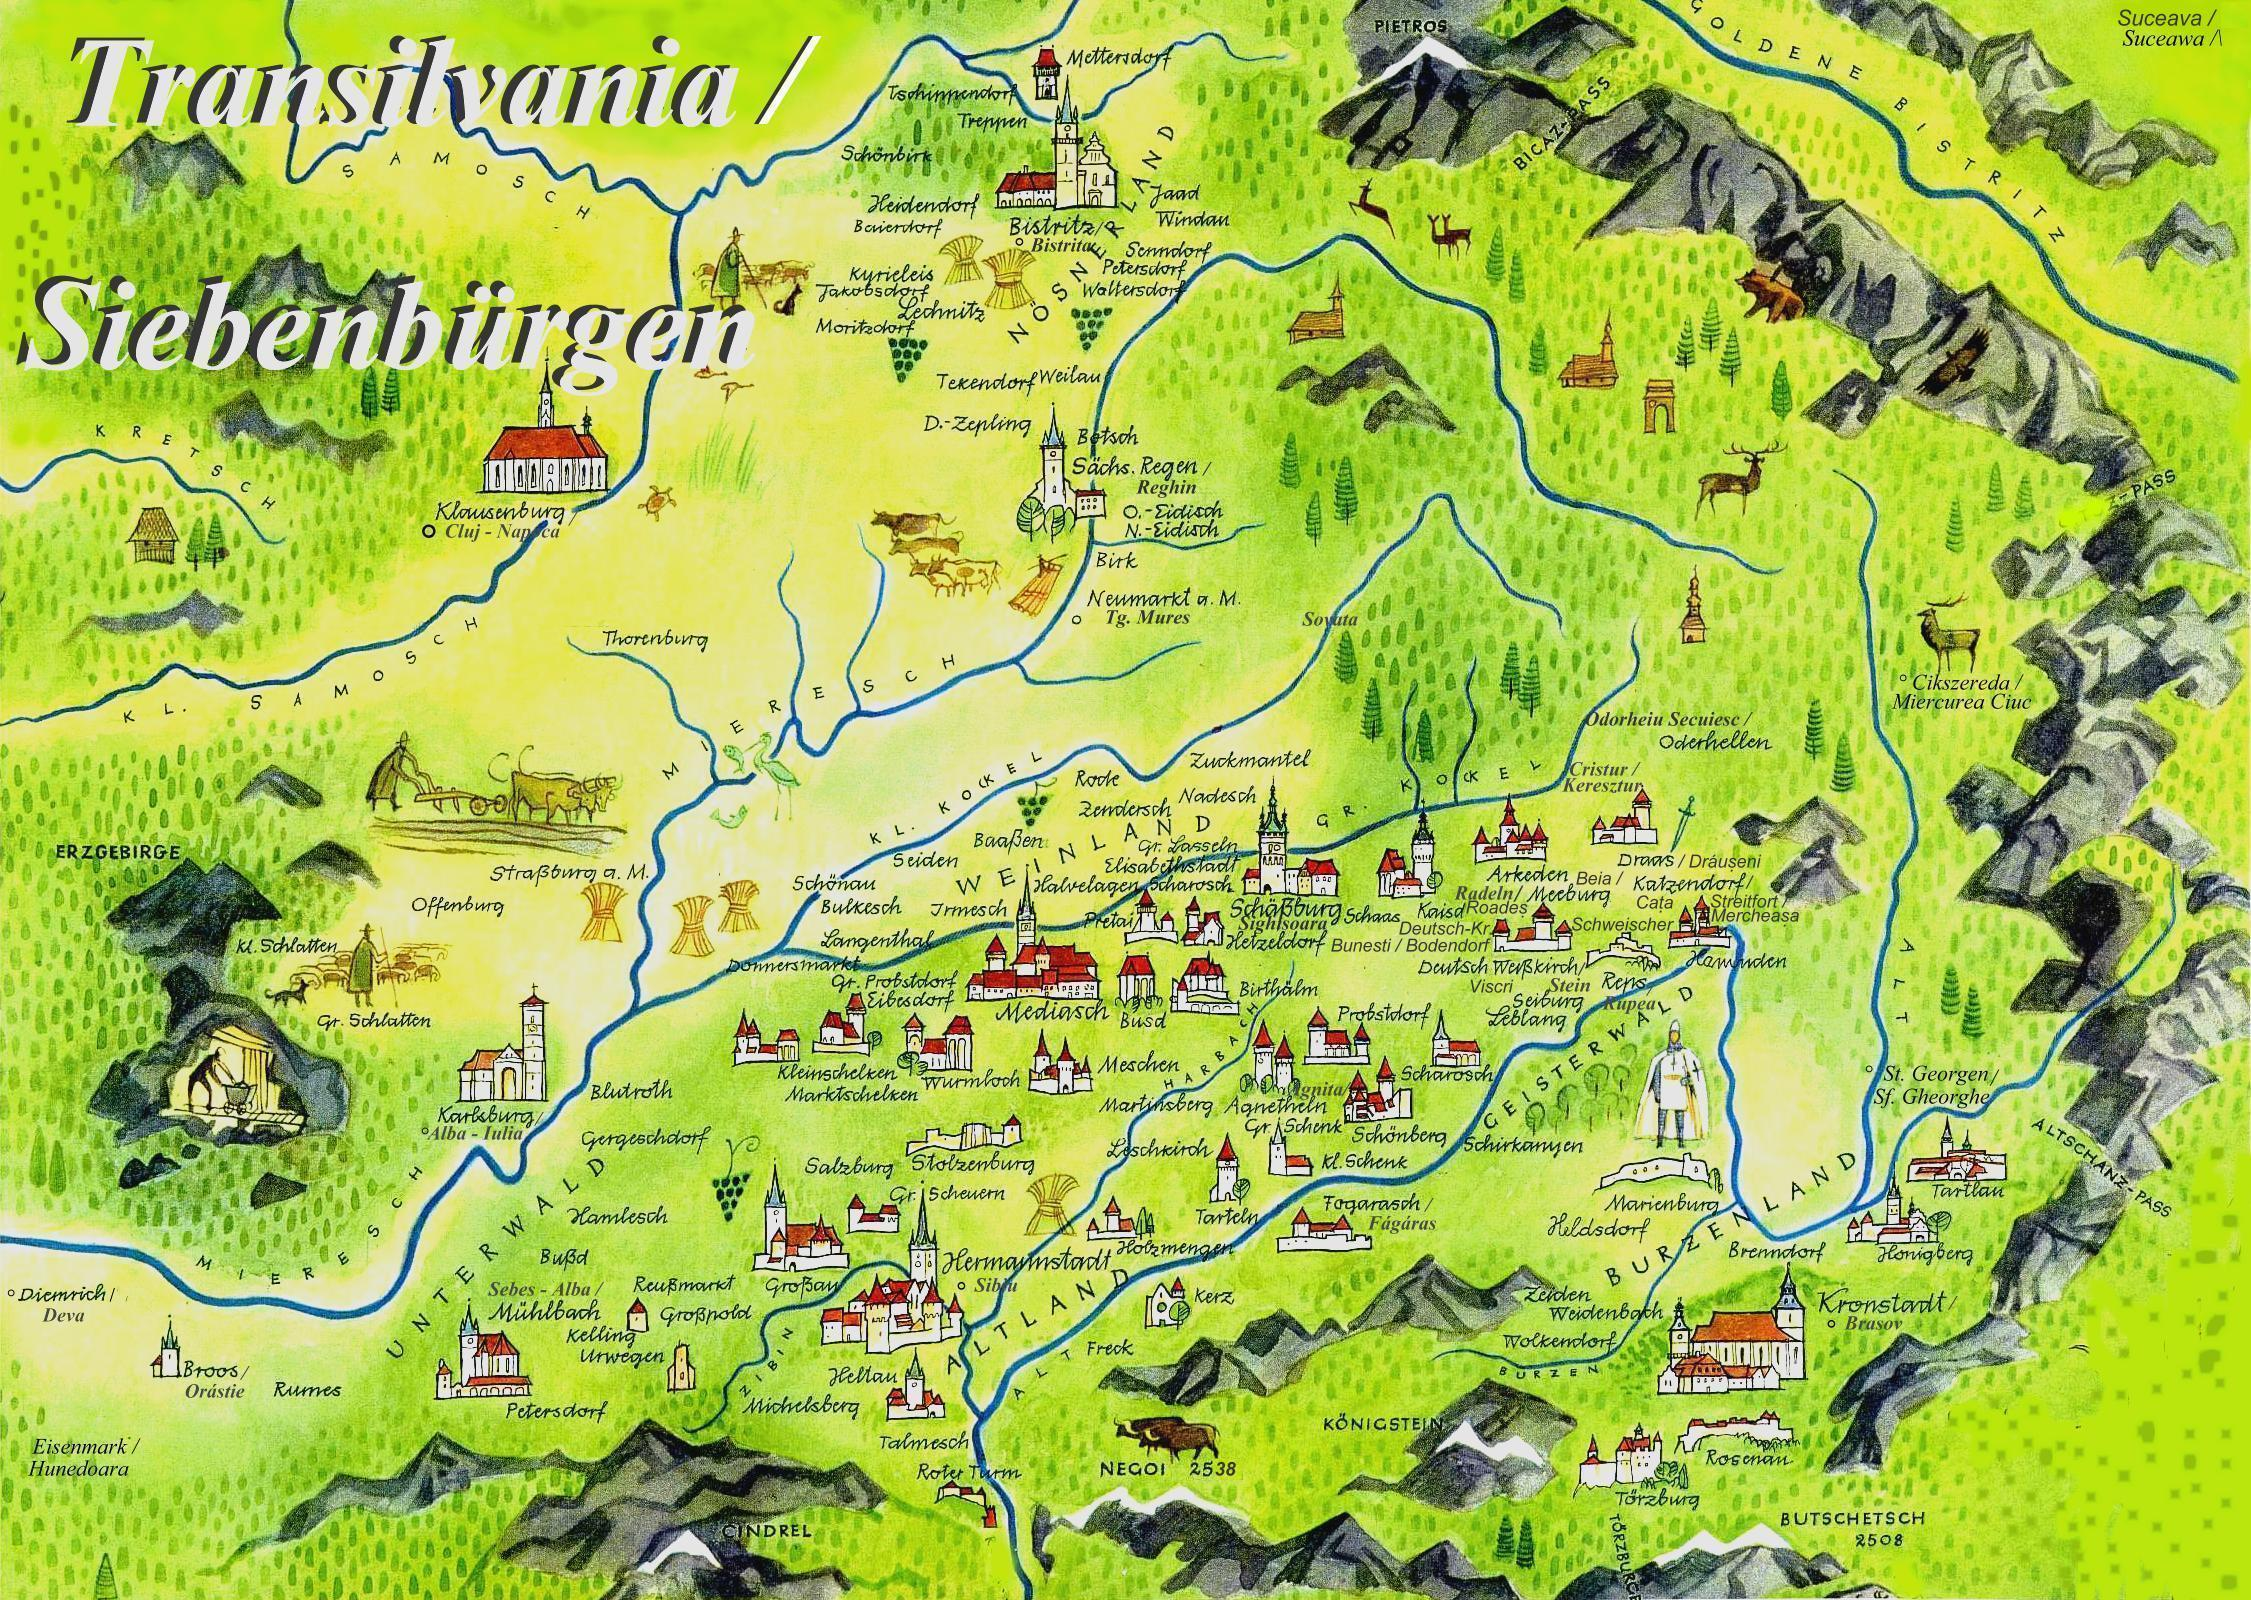 here offline maps with 63695 The Saxons Of Siebenbuergen Transylvania on 14196 together with Details furthermore 63695 The Saxons Of Siebenbuergen Transylvania together with Rcbc Savings Bank Dream Buys Auction Of Foreclosed Properties February 4 2012 together with 152500 Prince Of Persia.